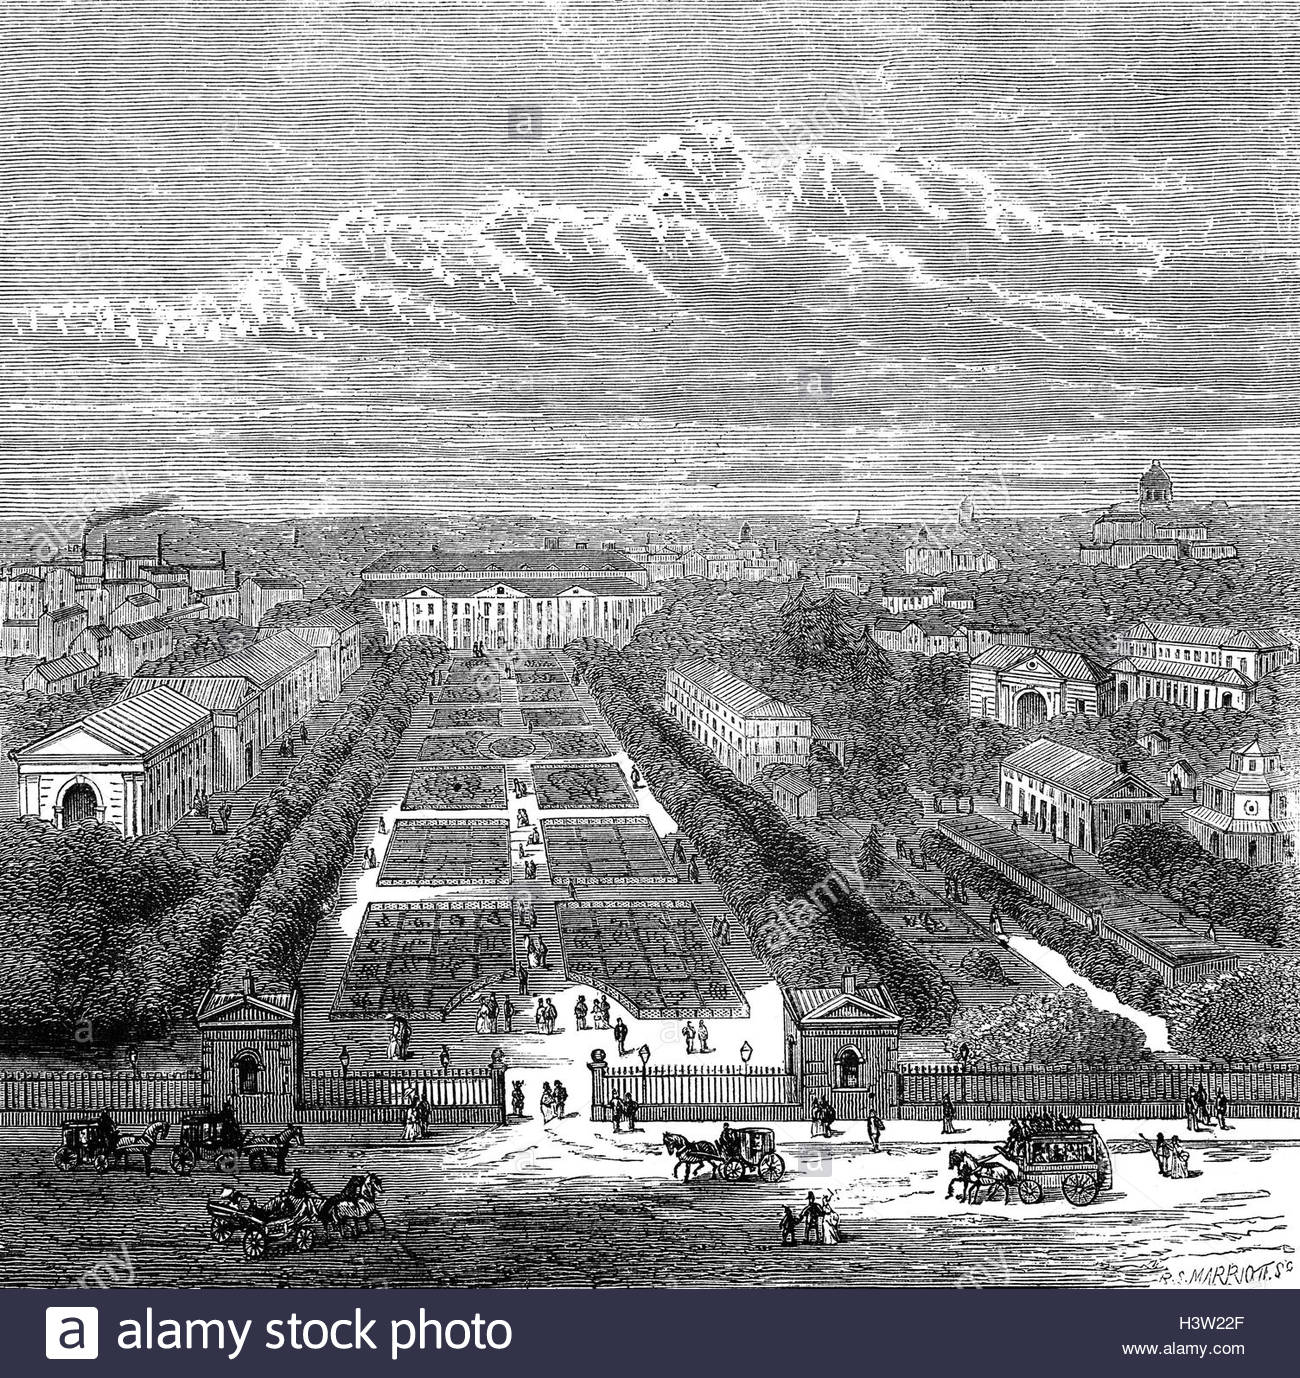 Jardin Des Plantes orleans Nouveau Woodcut Ve Able Stock S & Woodcut Ve Able Stock Of 67 Best Of Jardin Des Plantes orleans